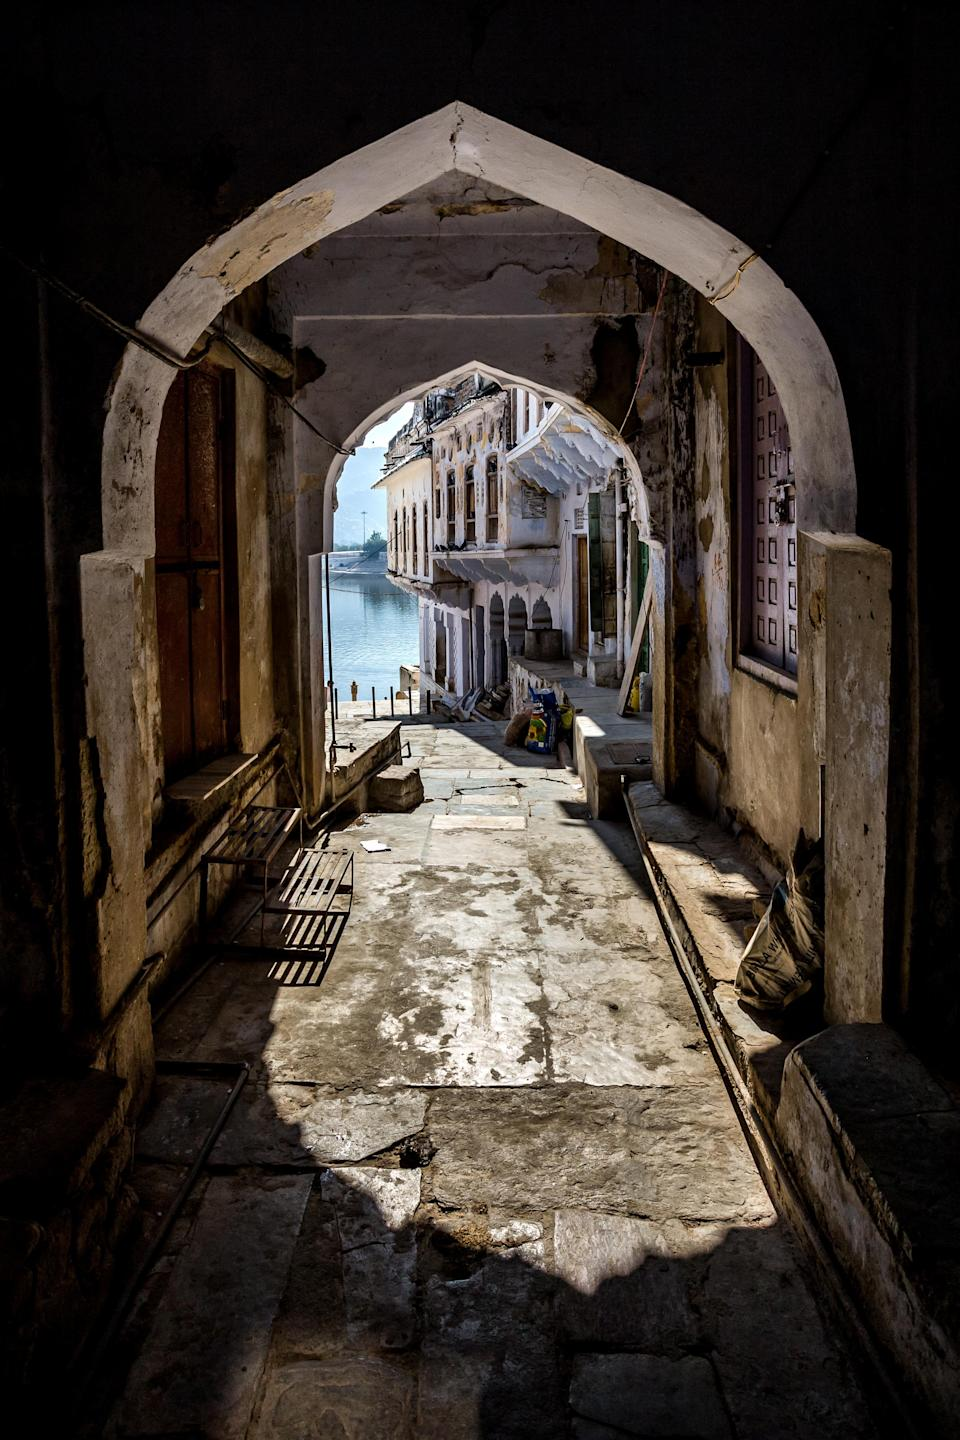 <p>The competition opened in July and closed for judging Tuesday 26 September. (Historic Photographer of the Year) </p>